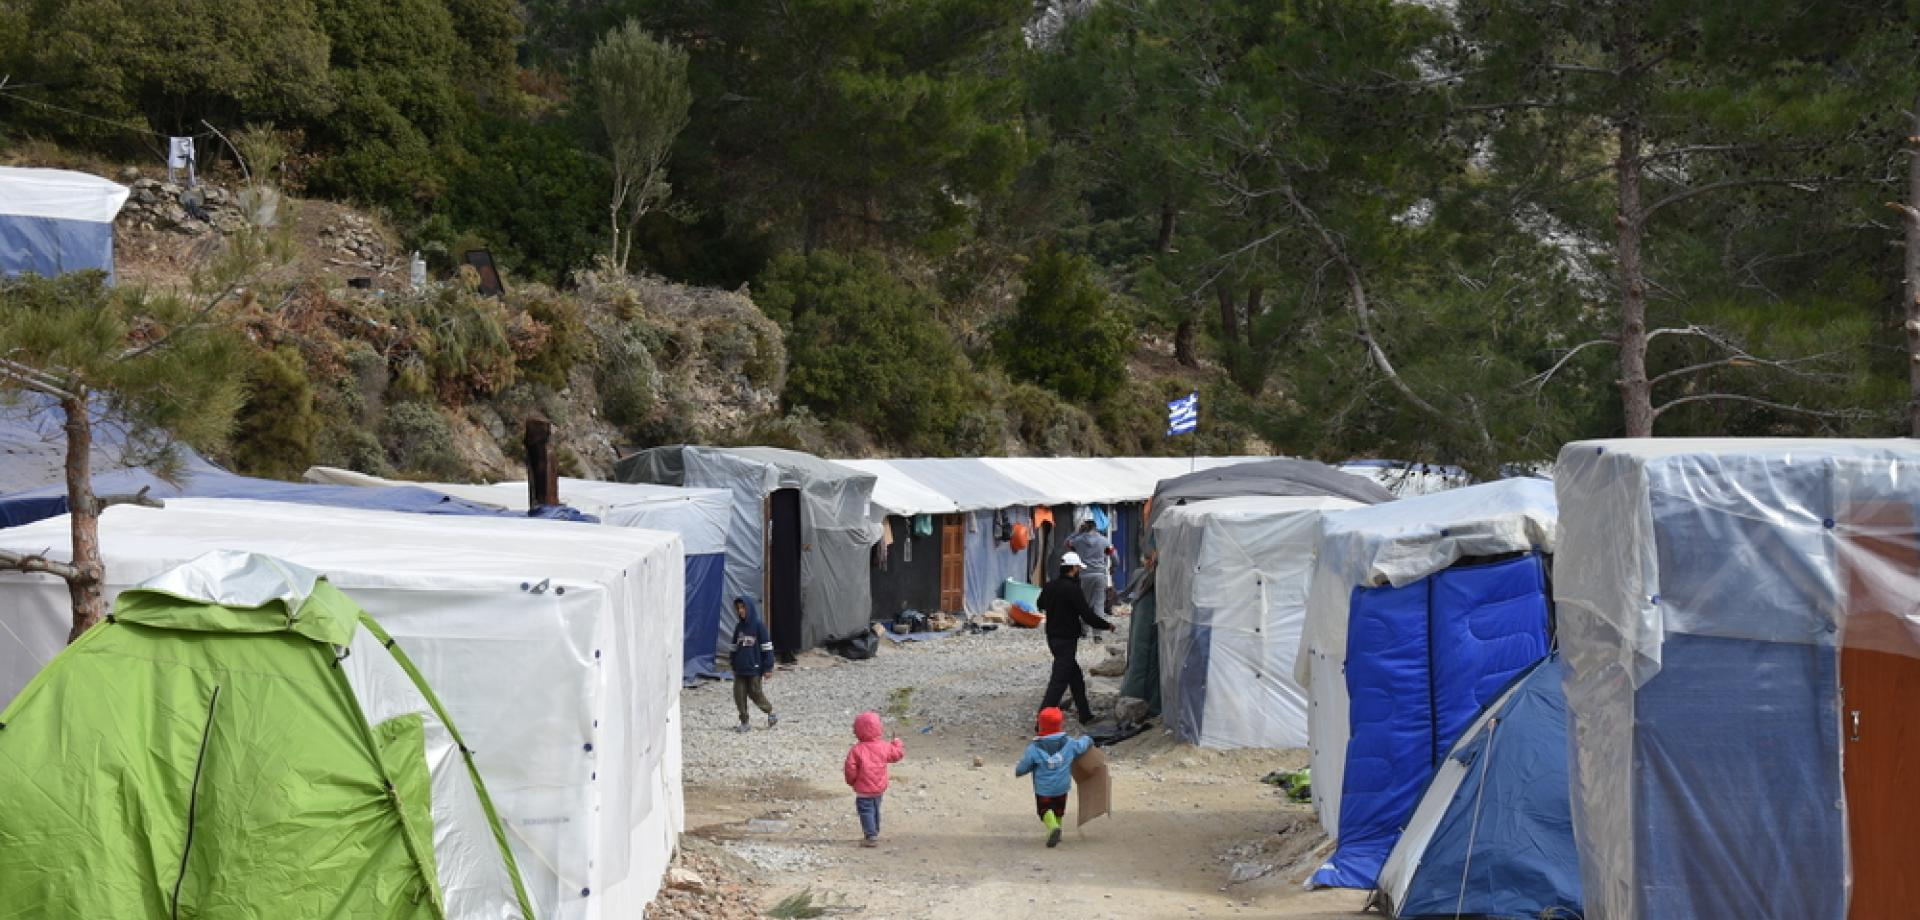 About 8,000 people live in the overcrowded Vathy refugee camp on the island of Samos, which was built to accommodate only 650 people